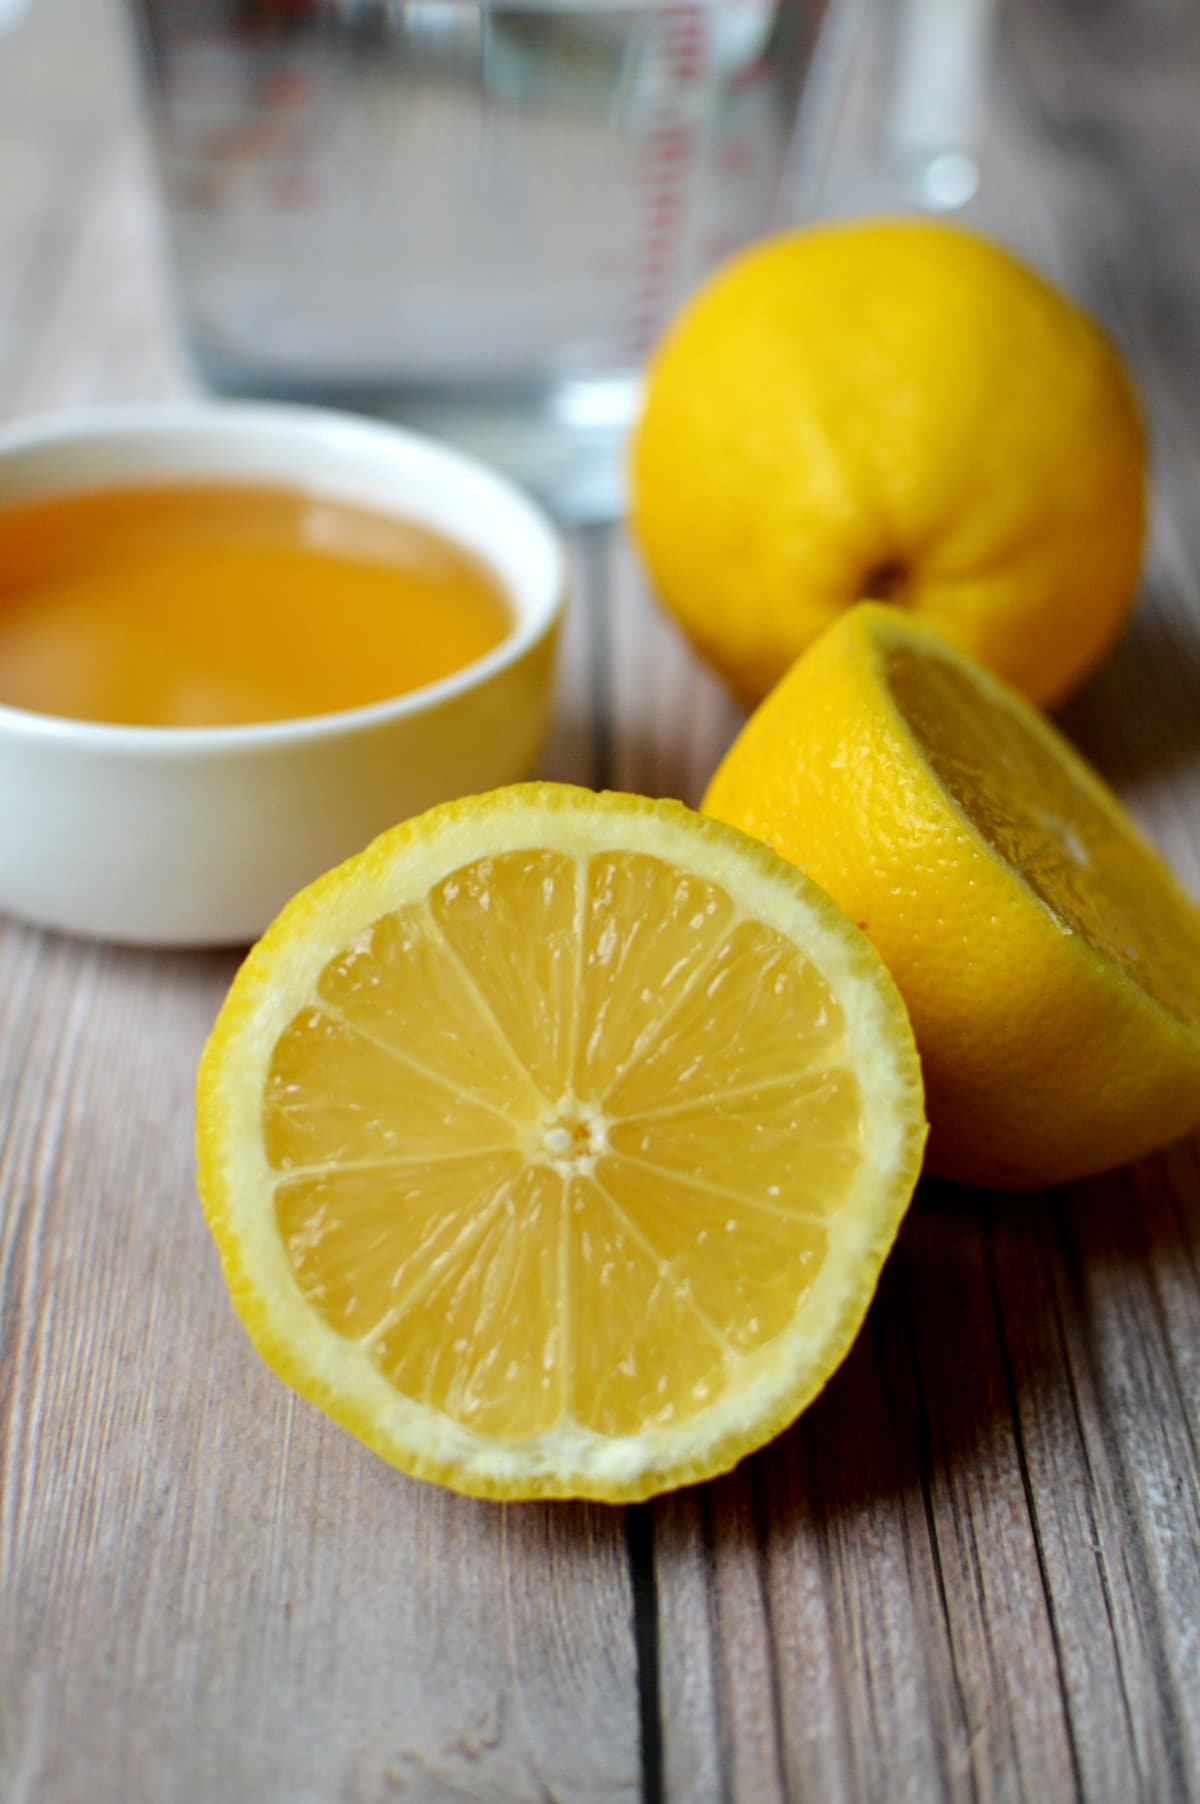 Lemons, agave, and water